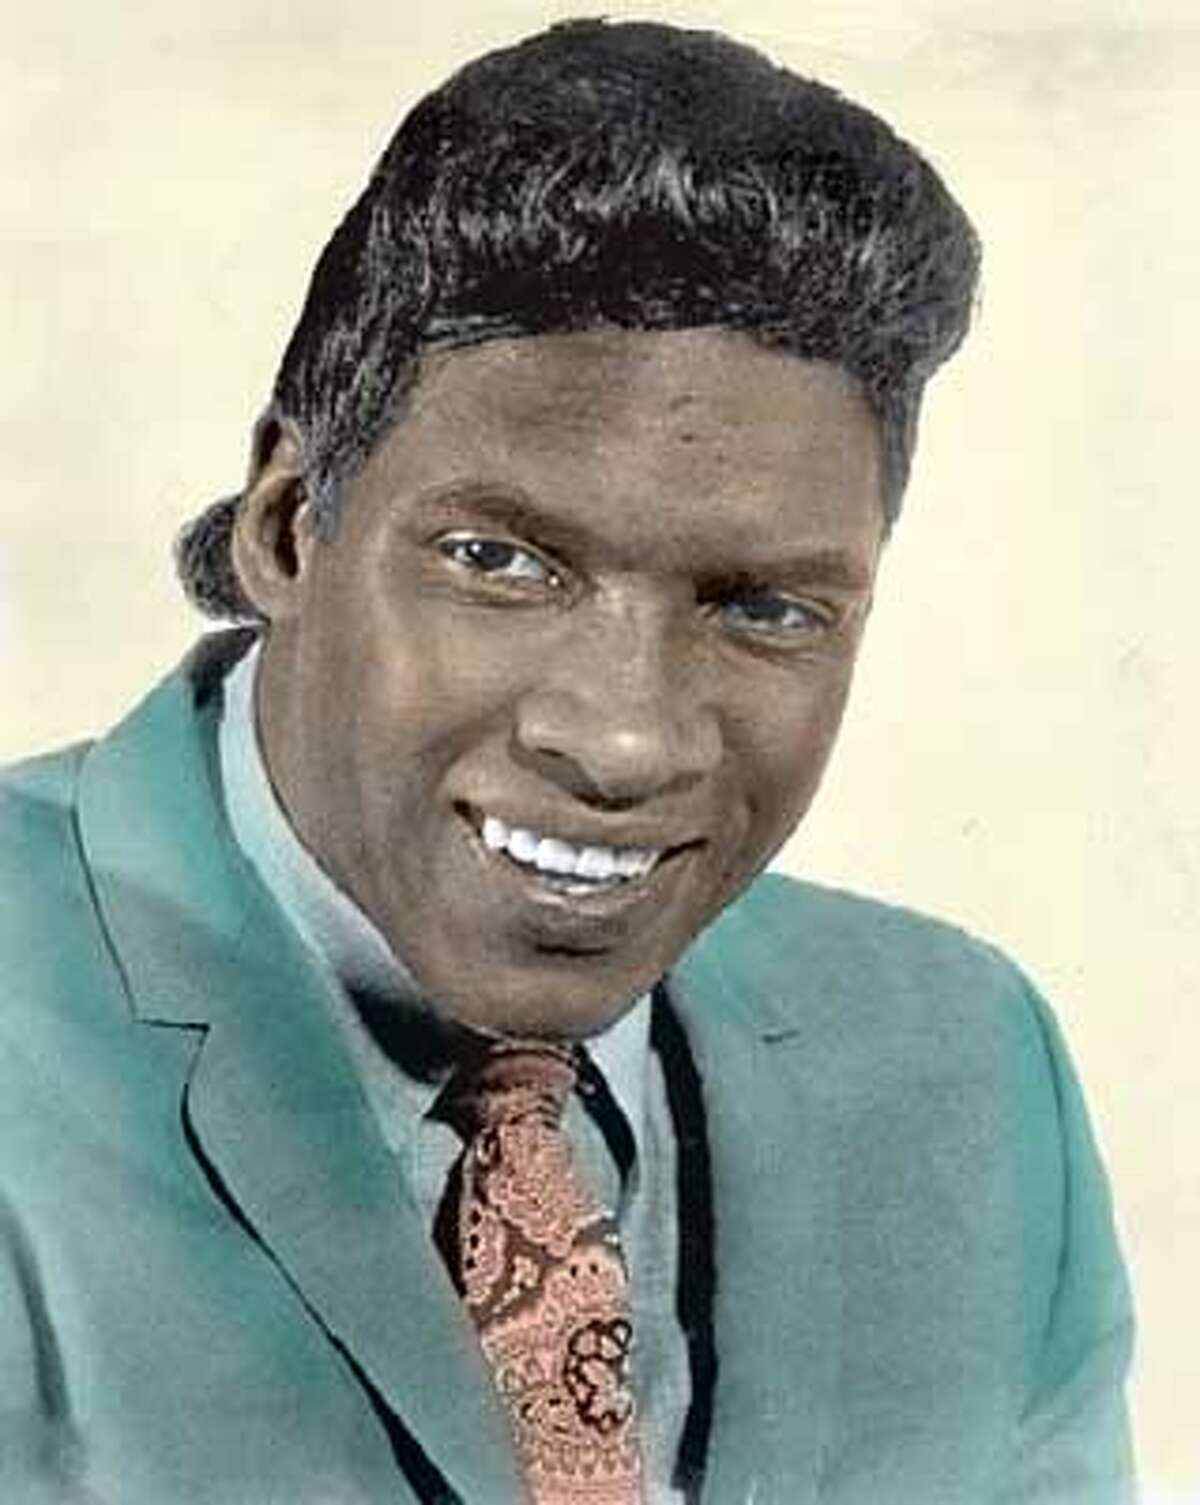 As Rodger Collins in the 1960s, Haji Sabrie had an album that vied for the top of playlists on local Top 40 stations.